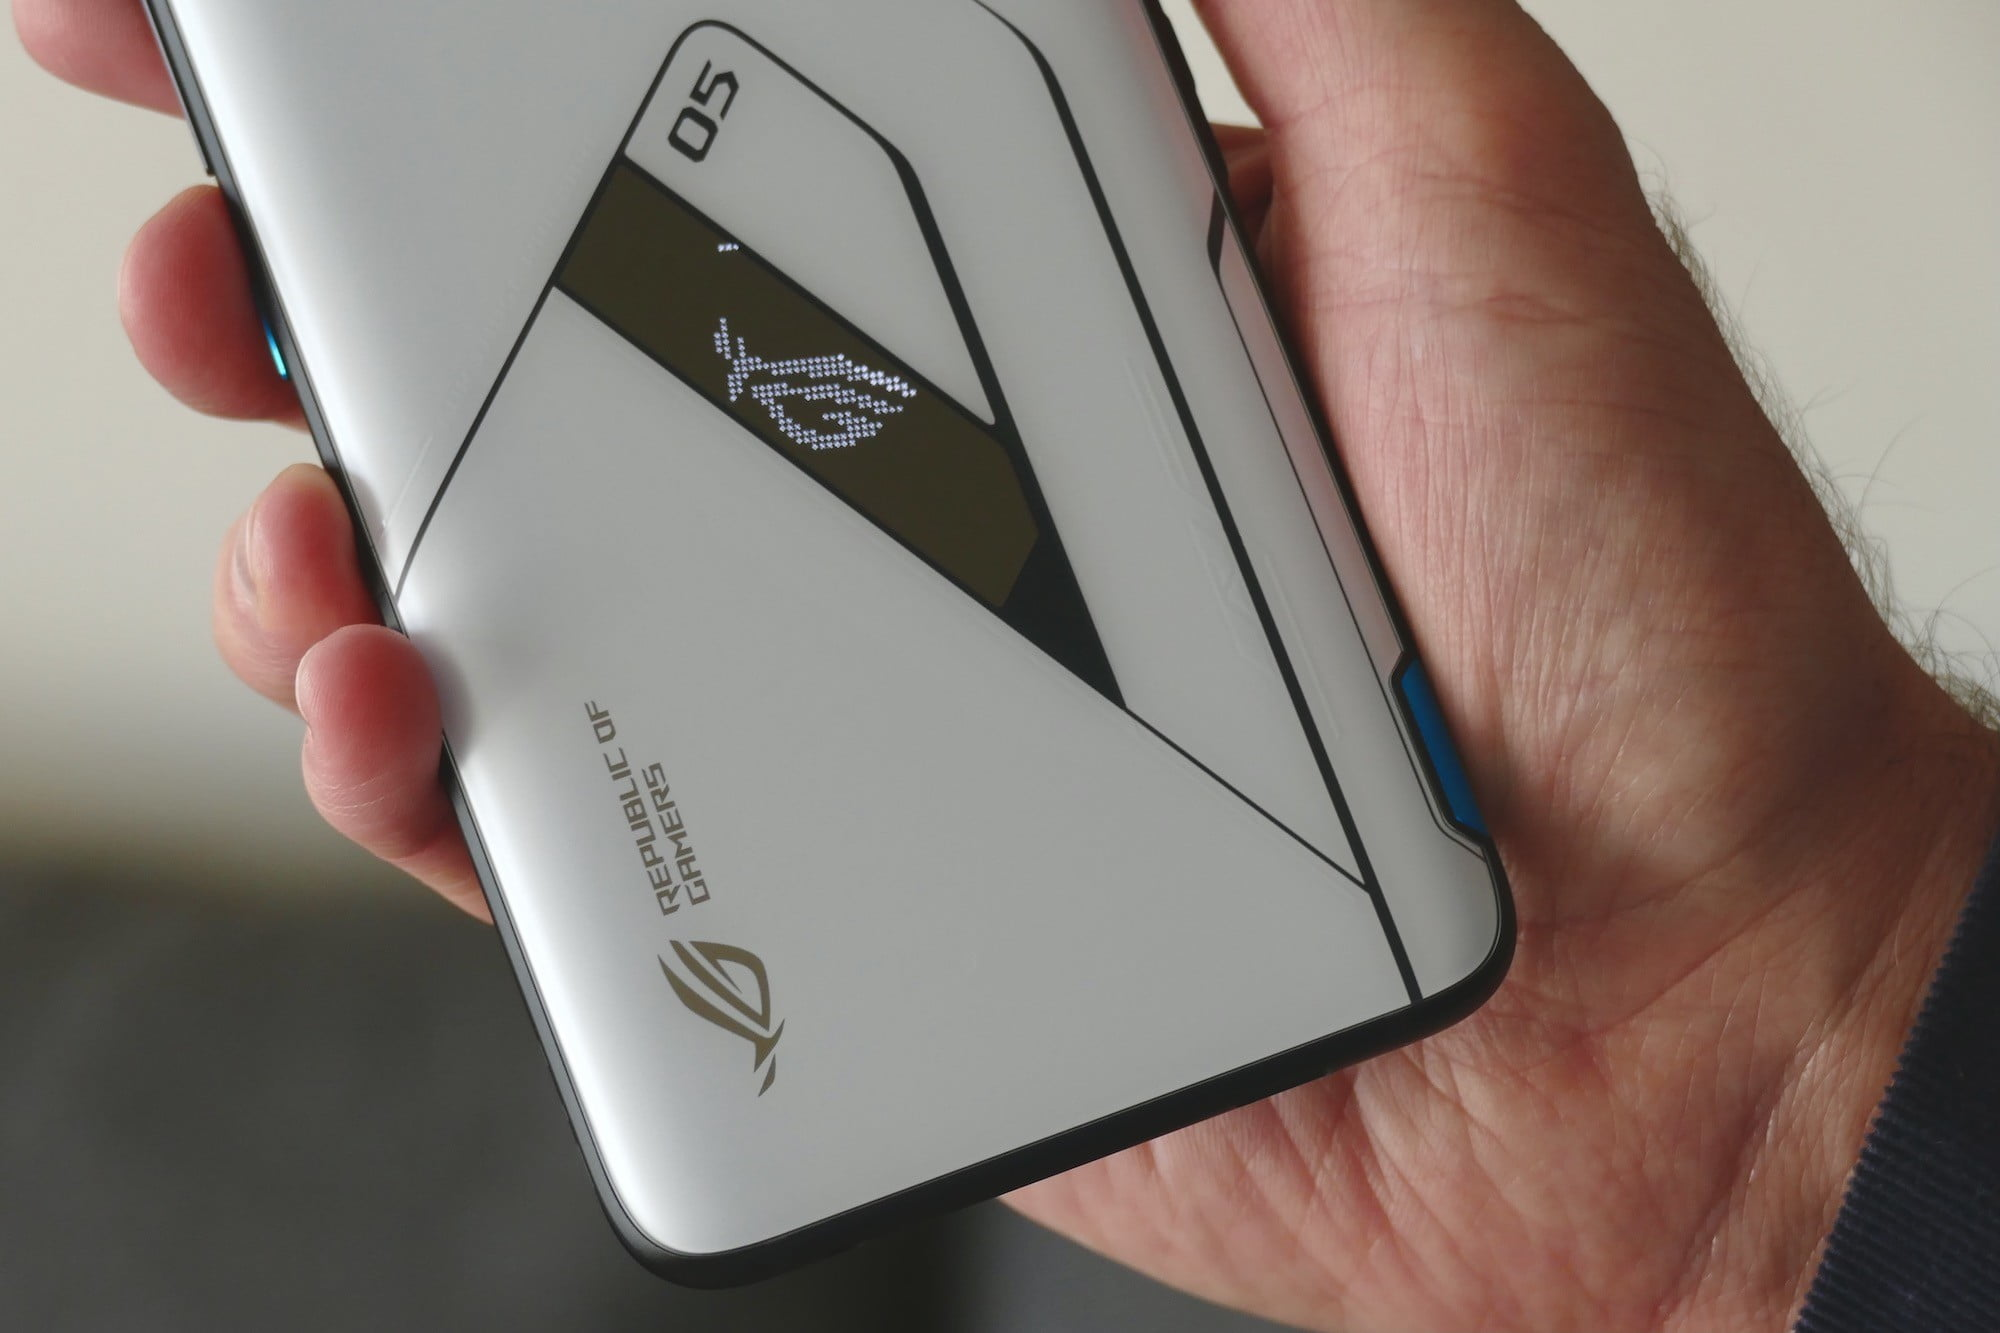 asus rog phone 5 ultimate fan gift package vision close